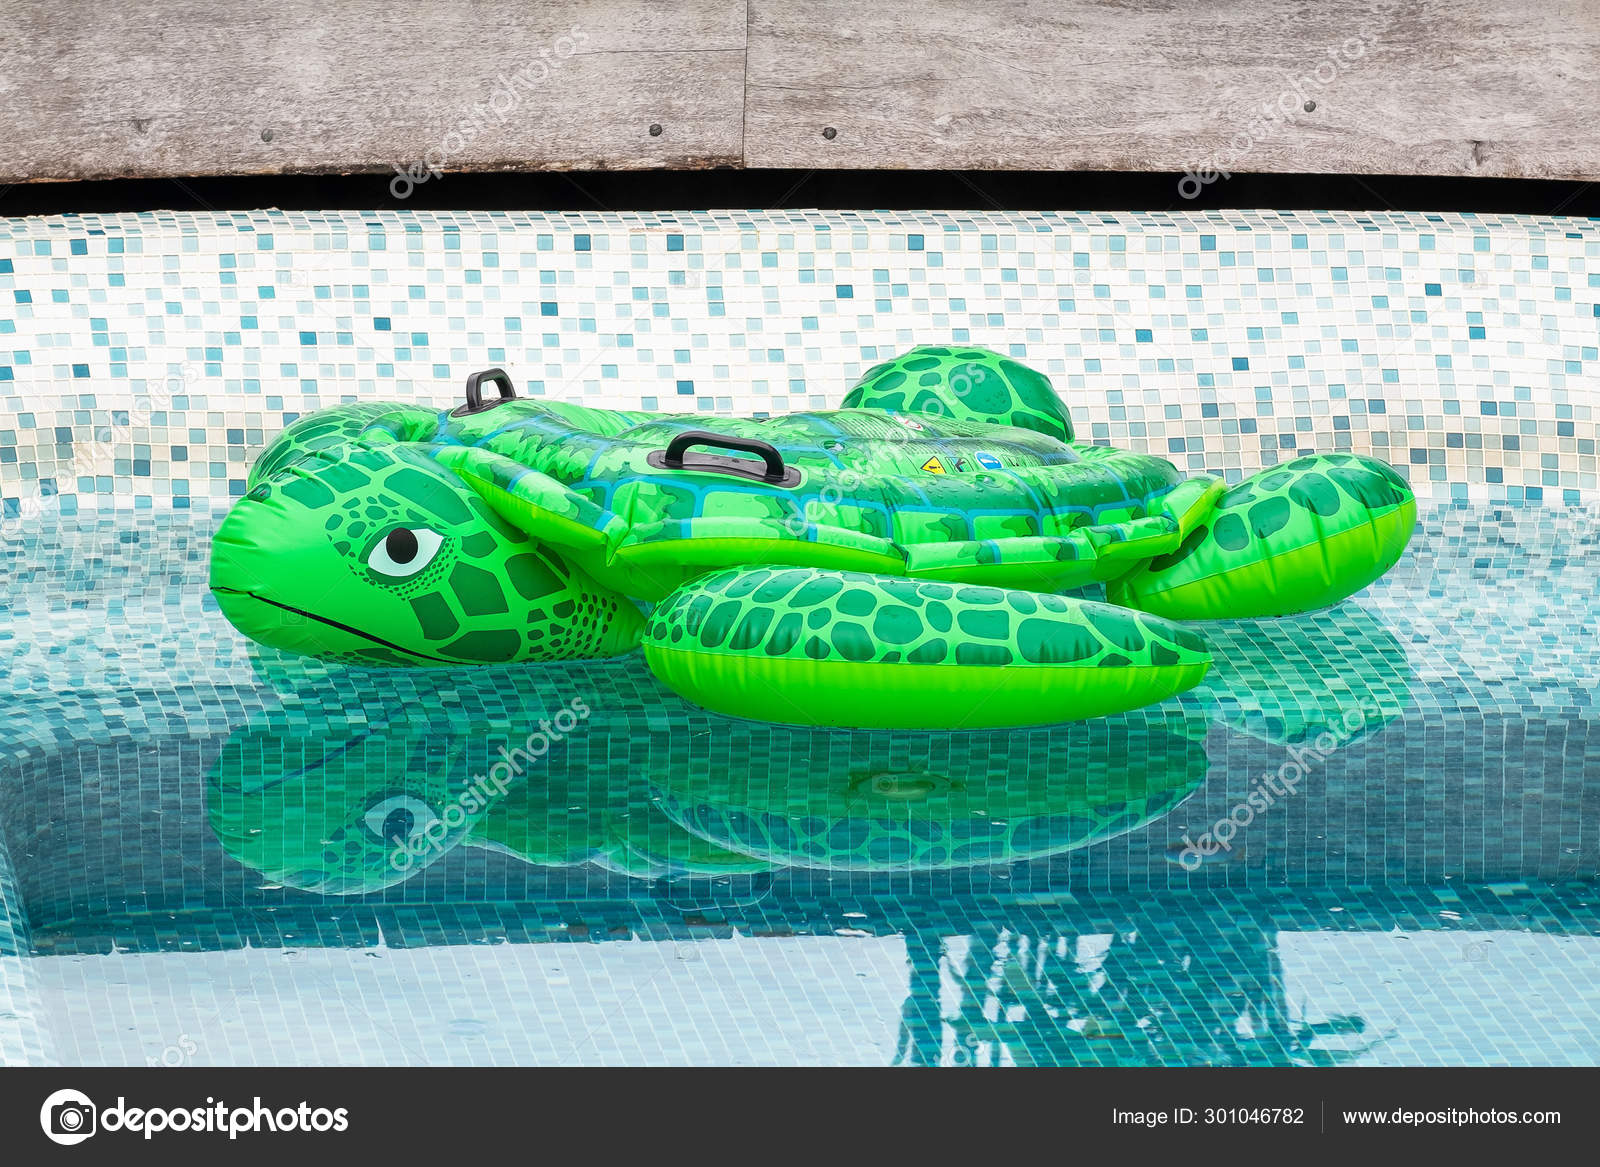 Cute Giant Green Turtle Inflatable Poolfloat in the Swimming ...